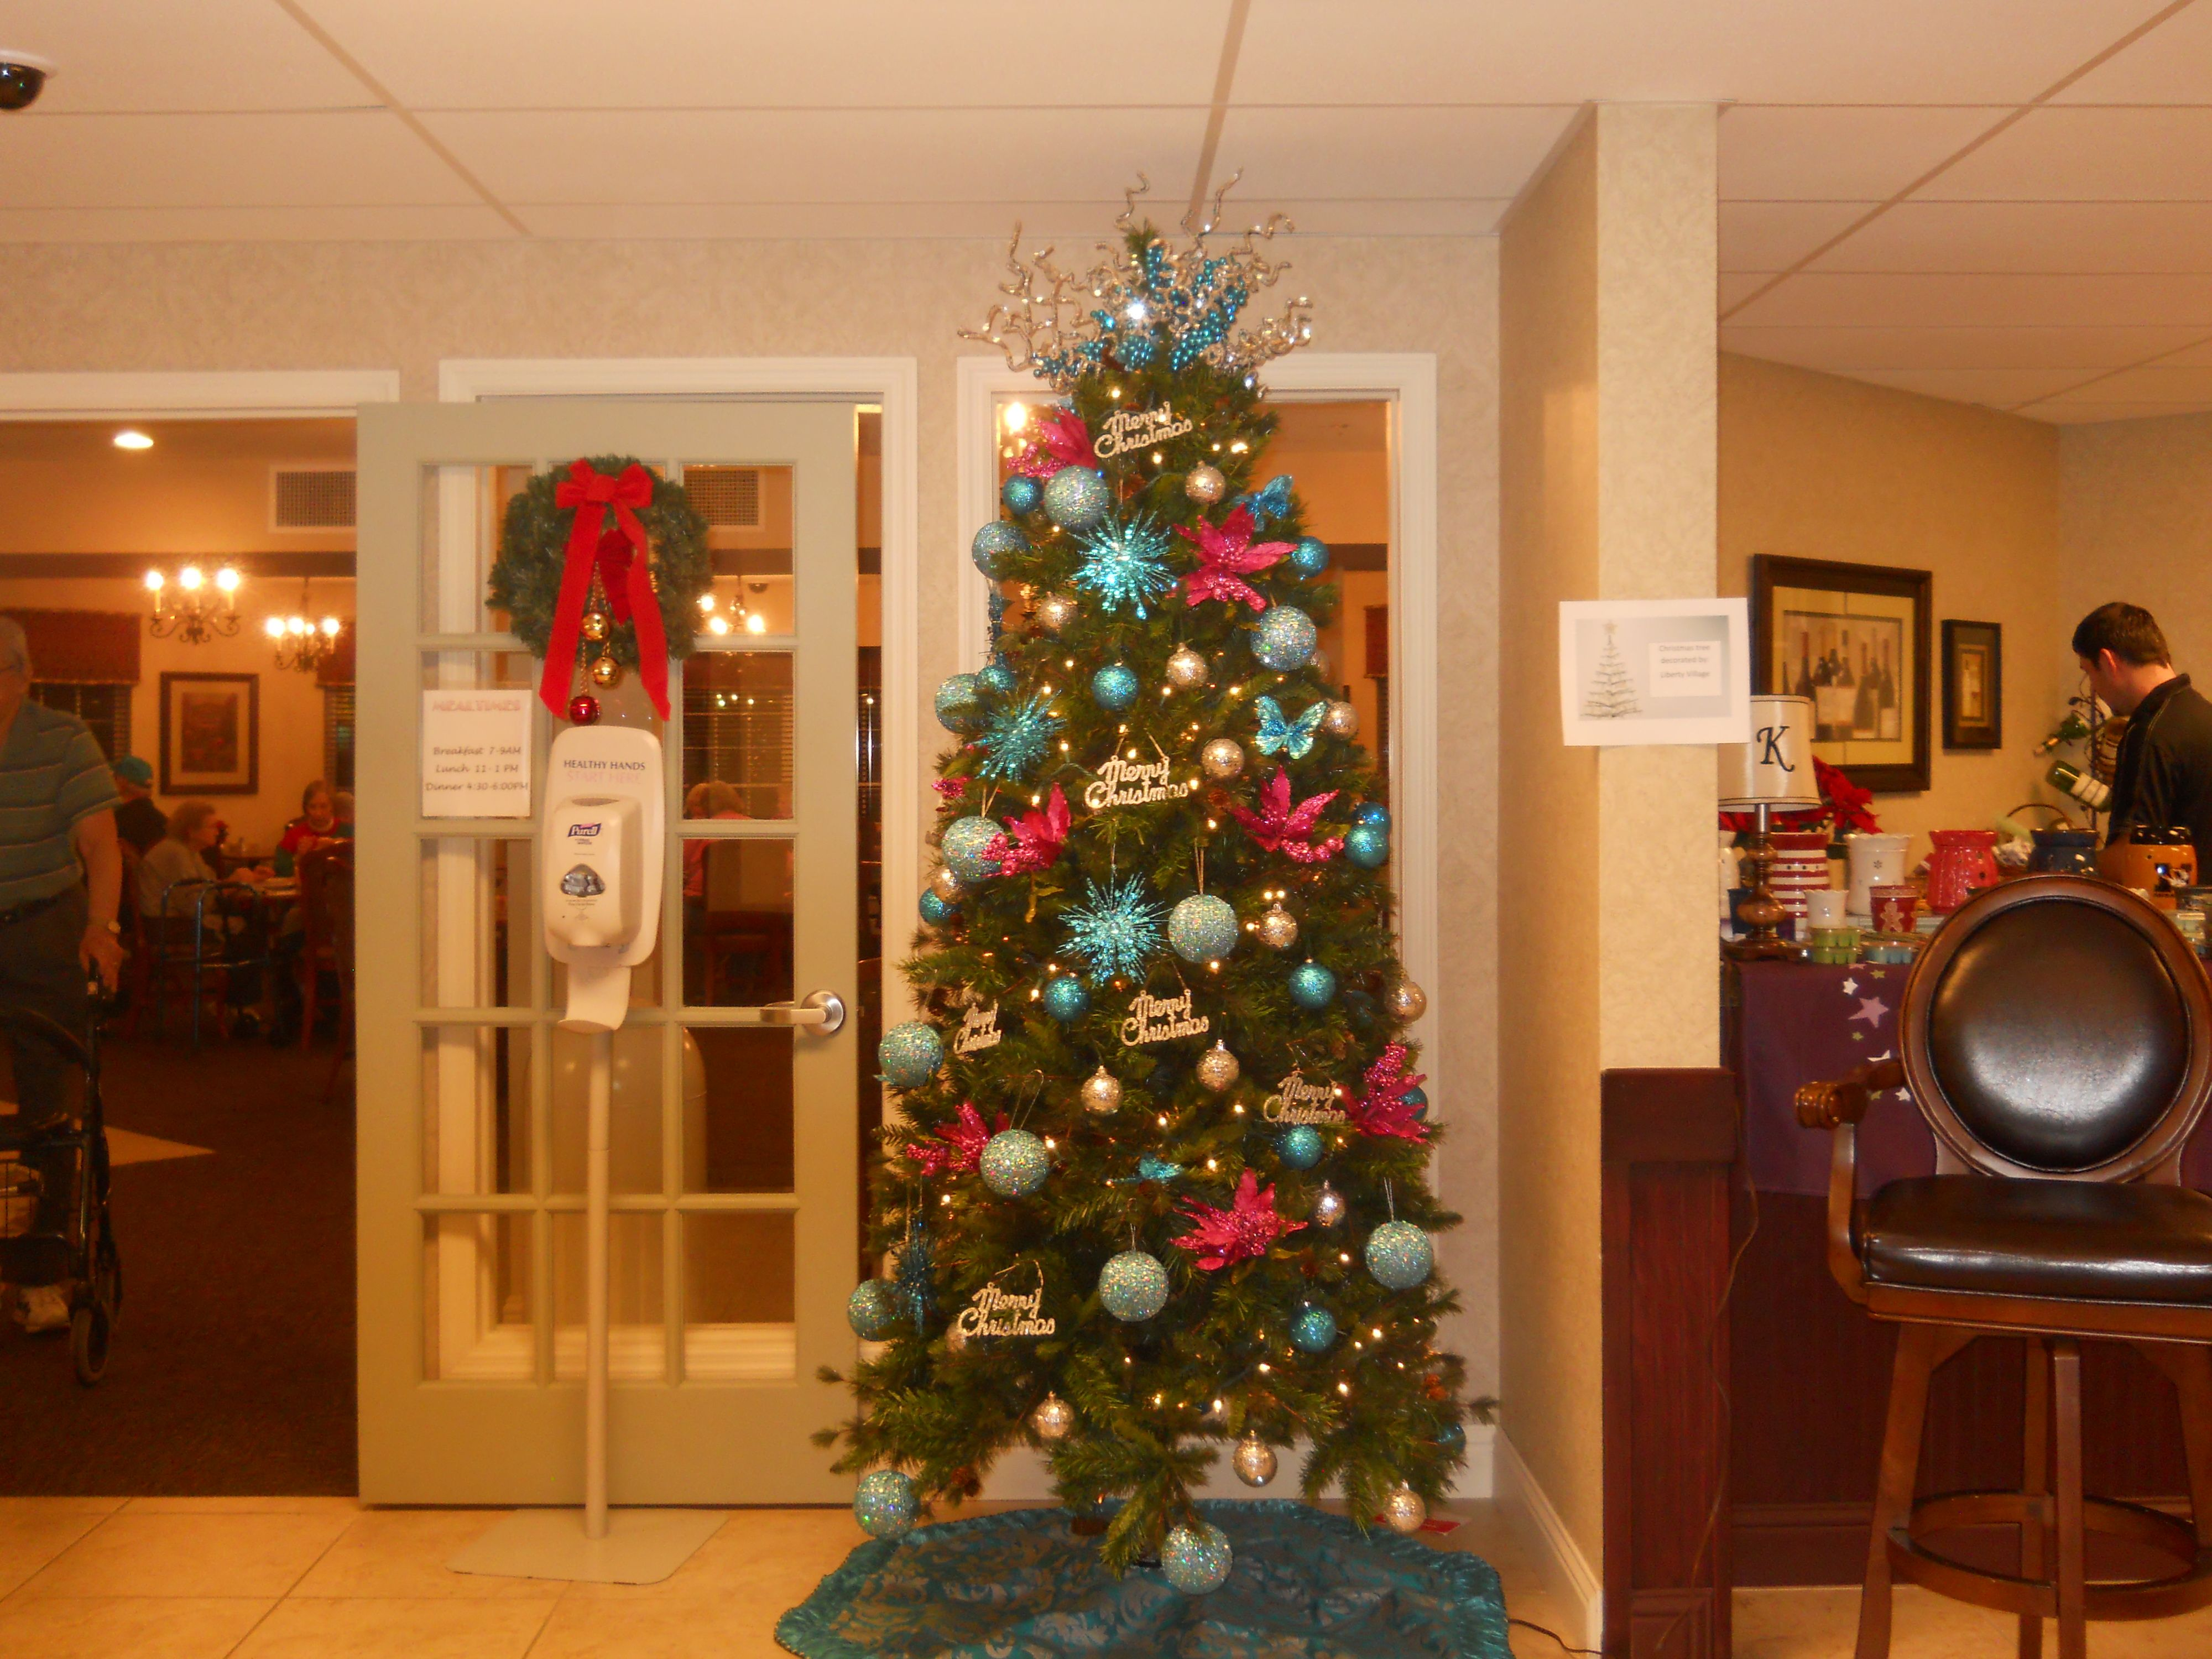 Just One Of Our Beautiful Christmas Trees At Knollwood Retirementmunity  In Caseyville, Illinois